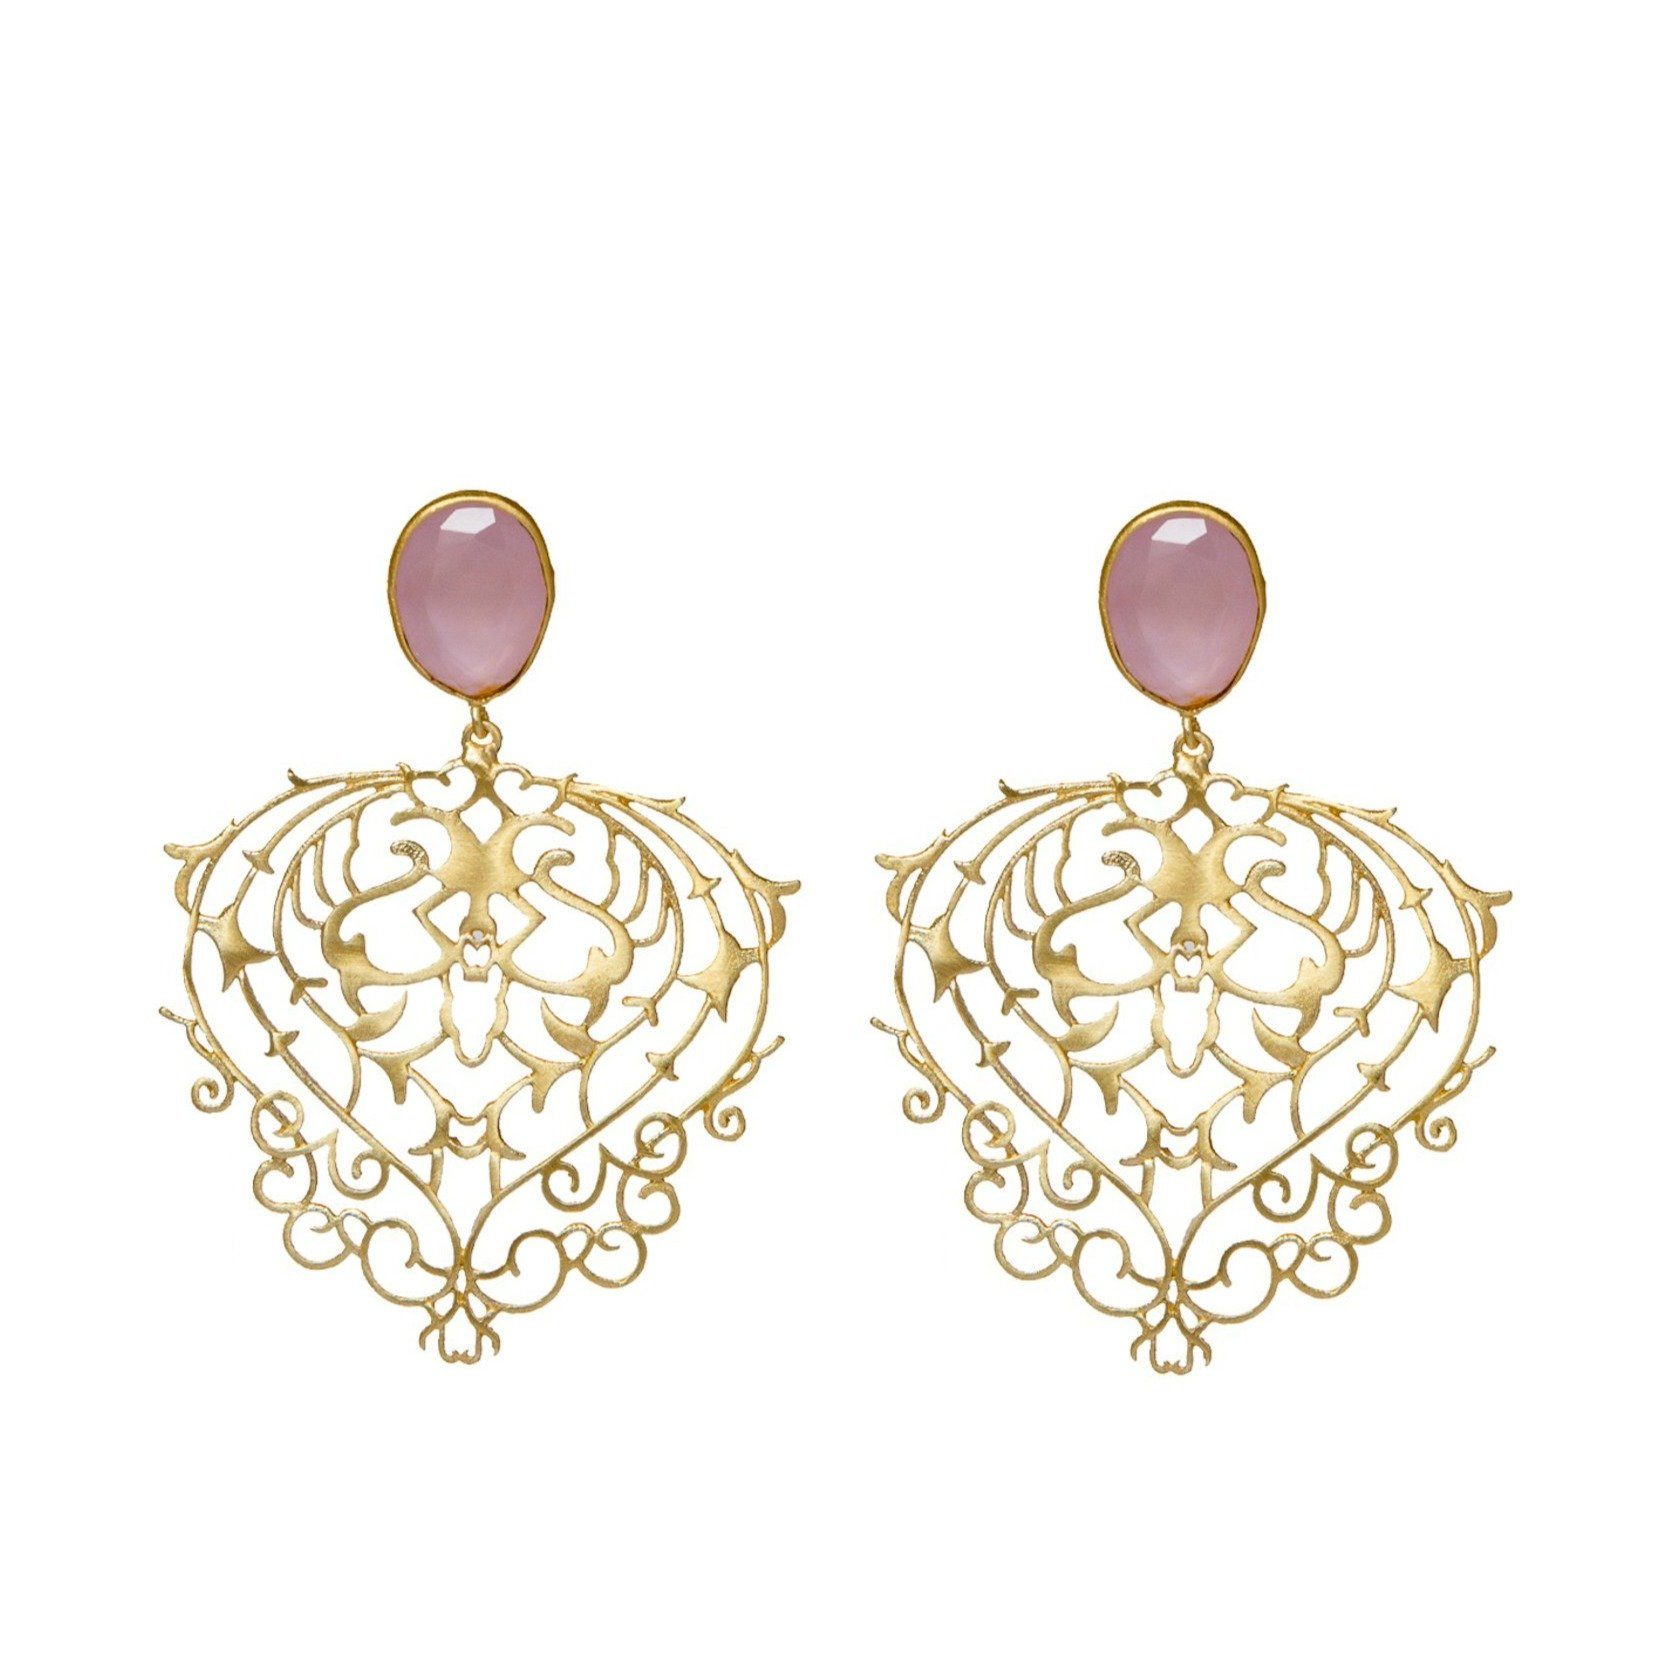 Octavia filigree earrings in rose quartz - Statement Pieces